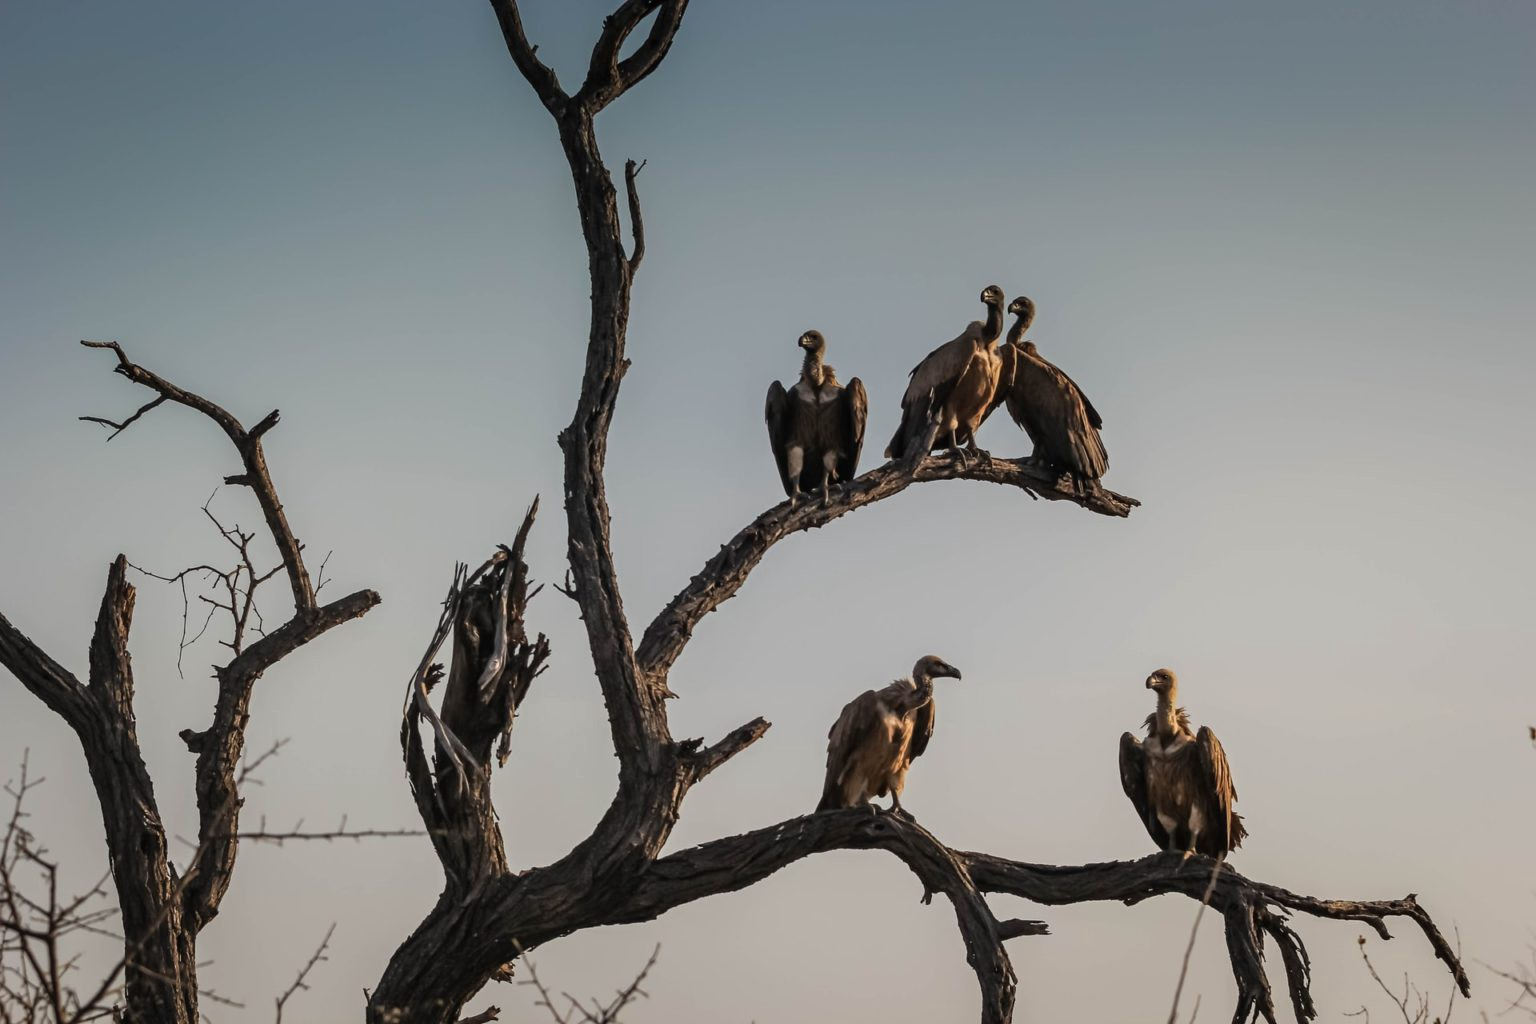 Vultures perched on a tree